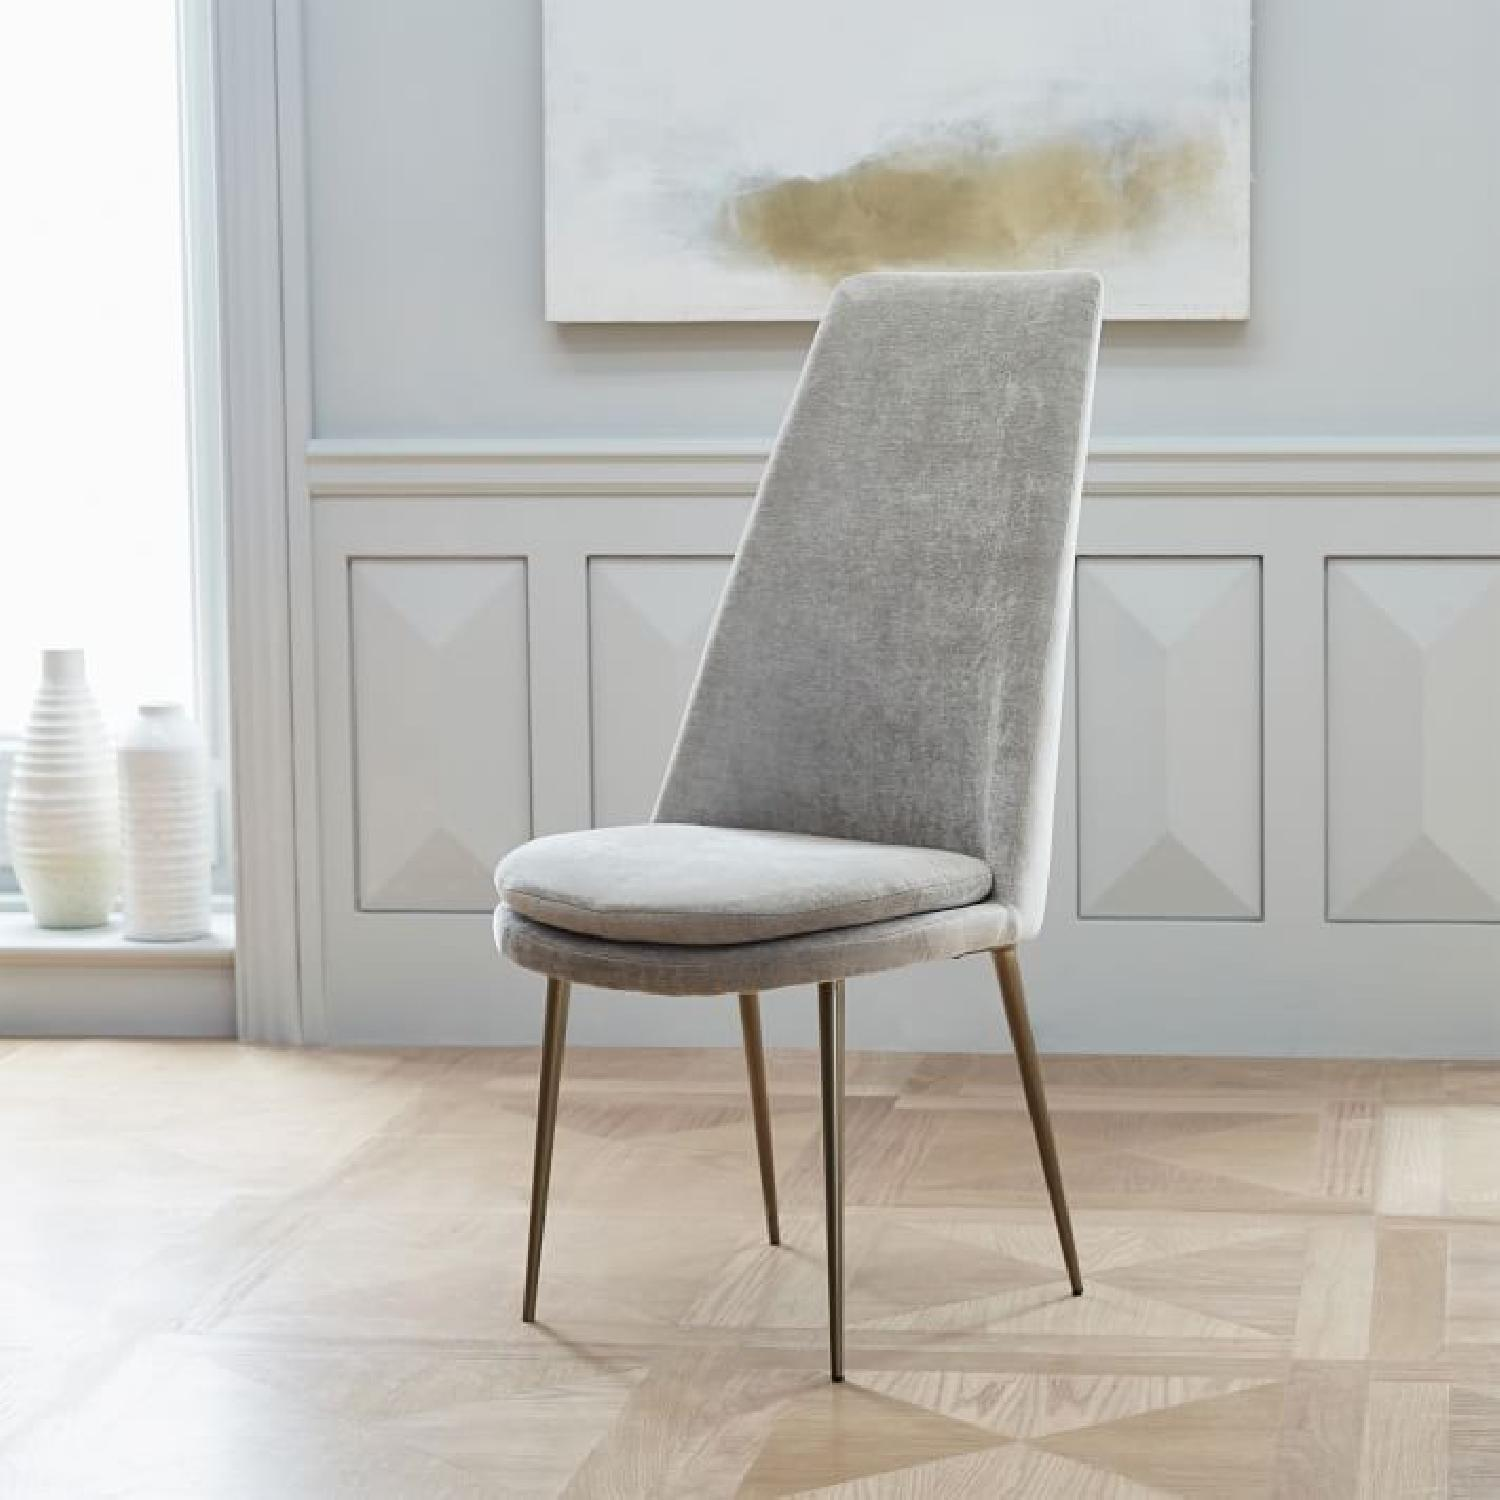 West Elm Finley Dining Chair - image-3